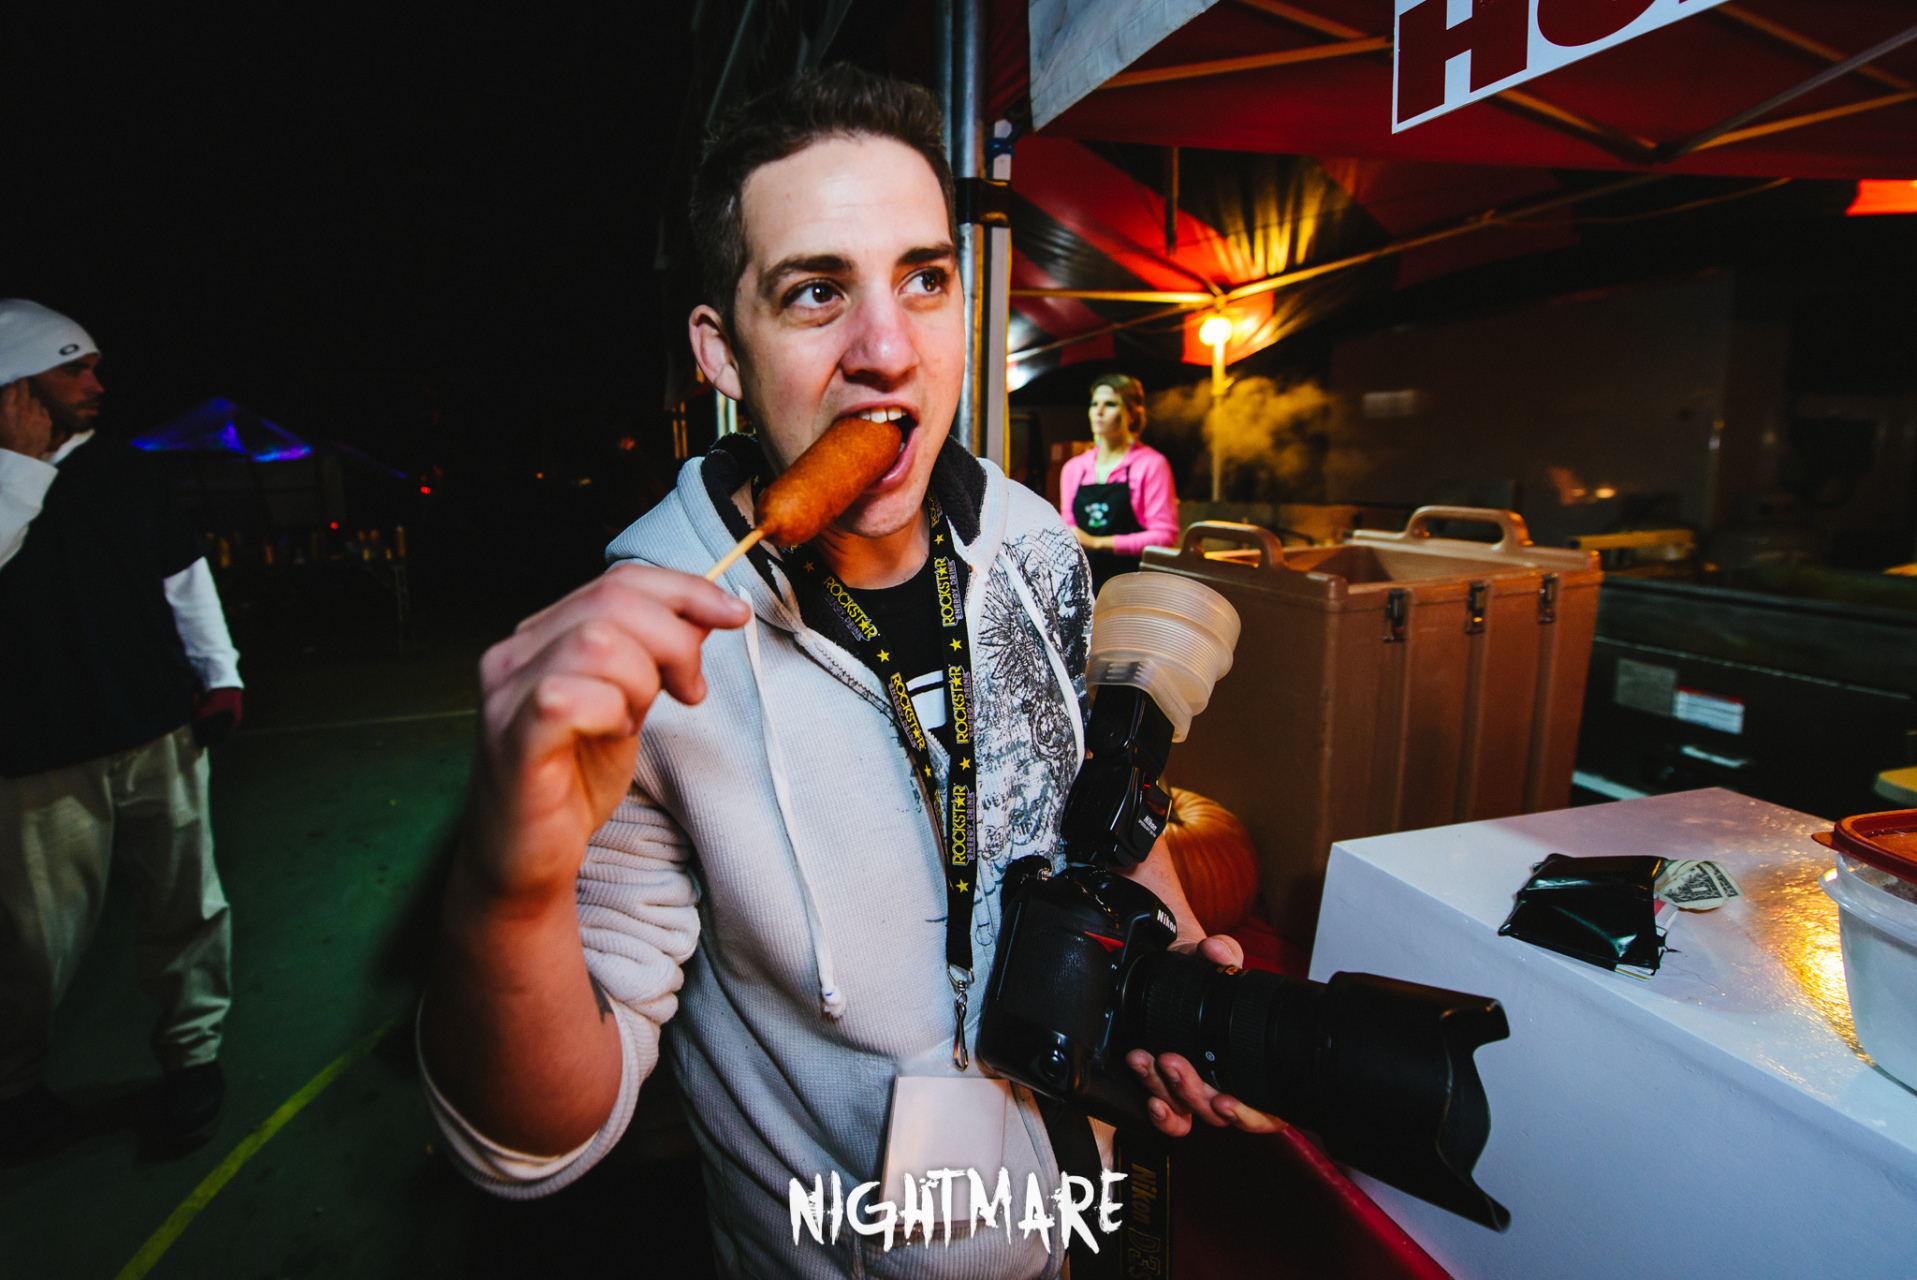 Nightmare_day1-70